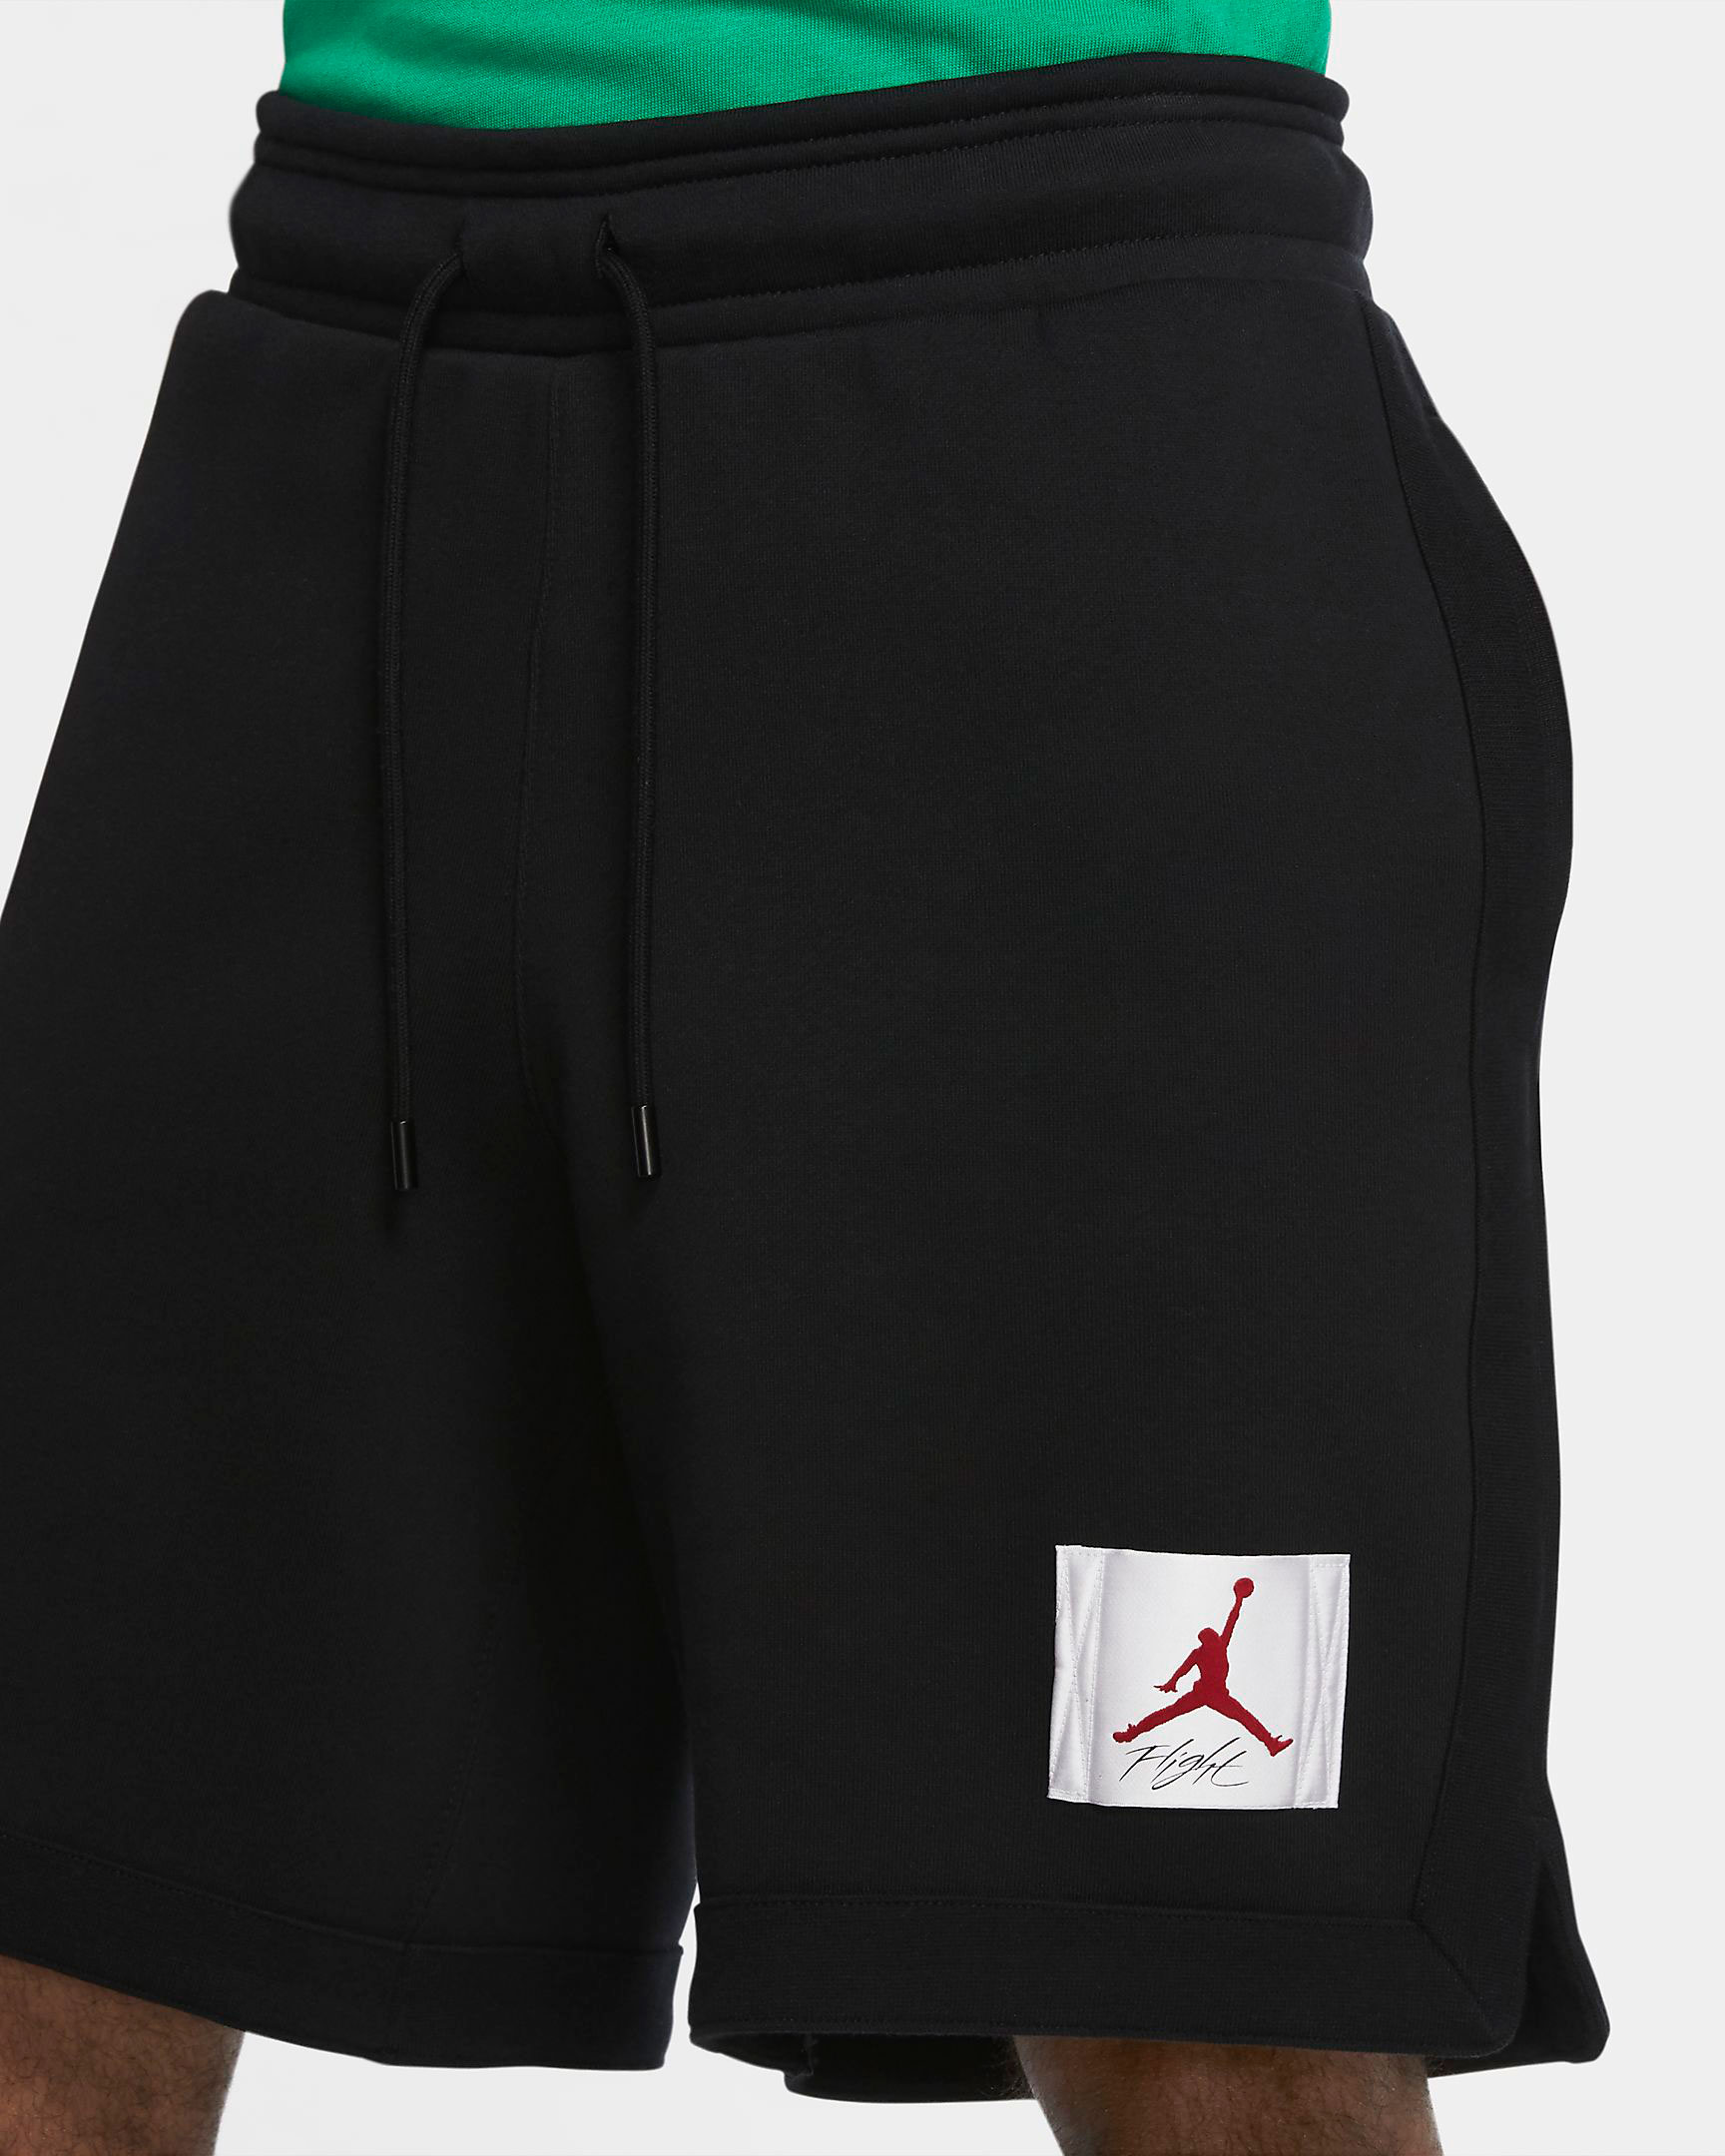 jordan-flight-shorts-black-red